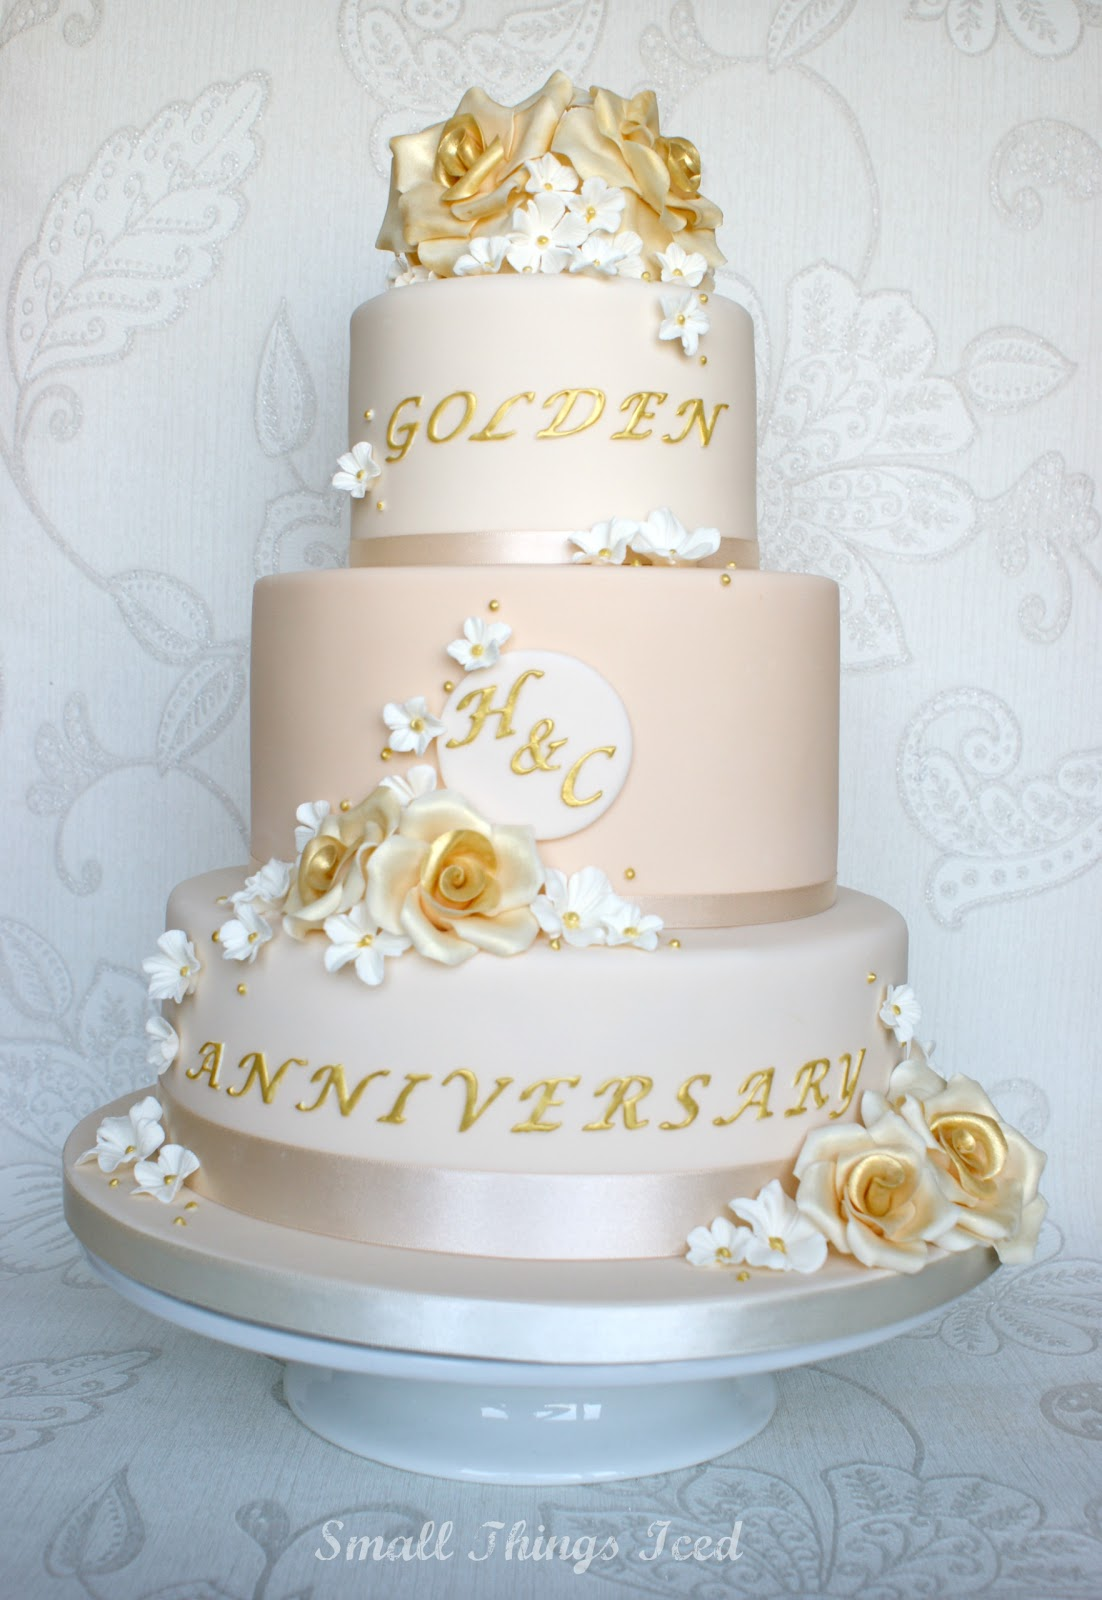 Cake Decorating For Golden Wedding Anniversary : Small Things Iced: Golden Wedding Anniversary Cake